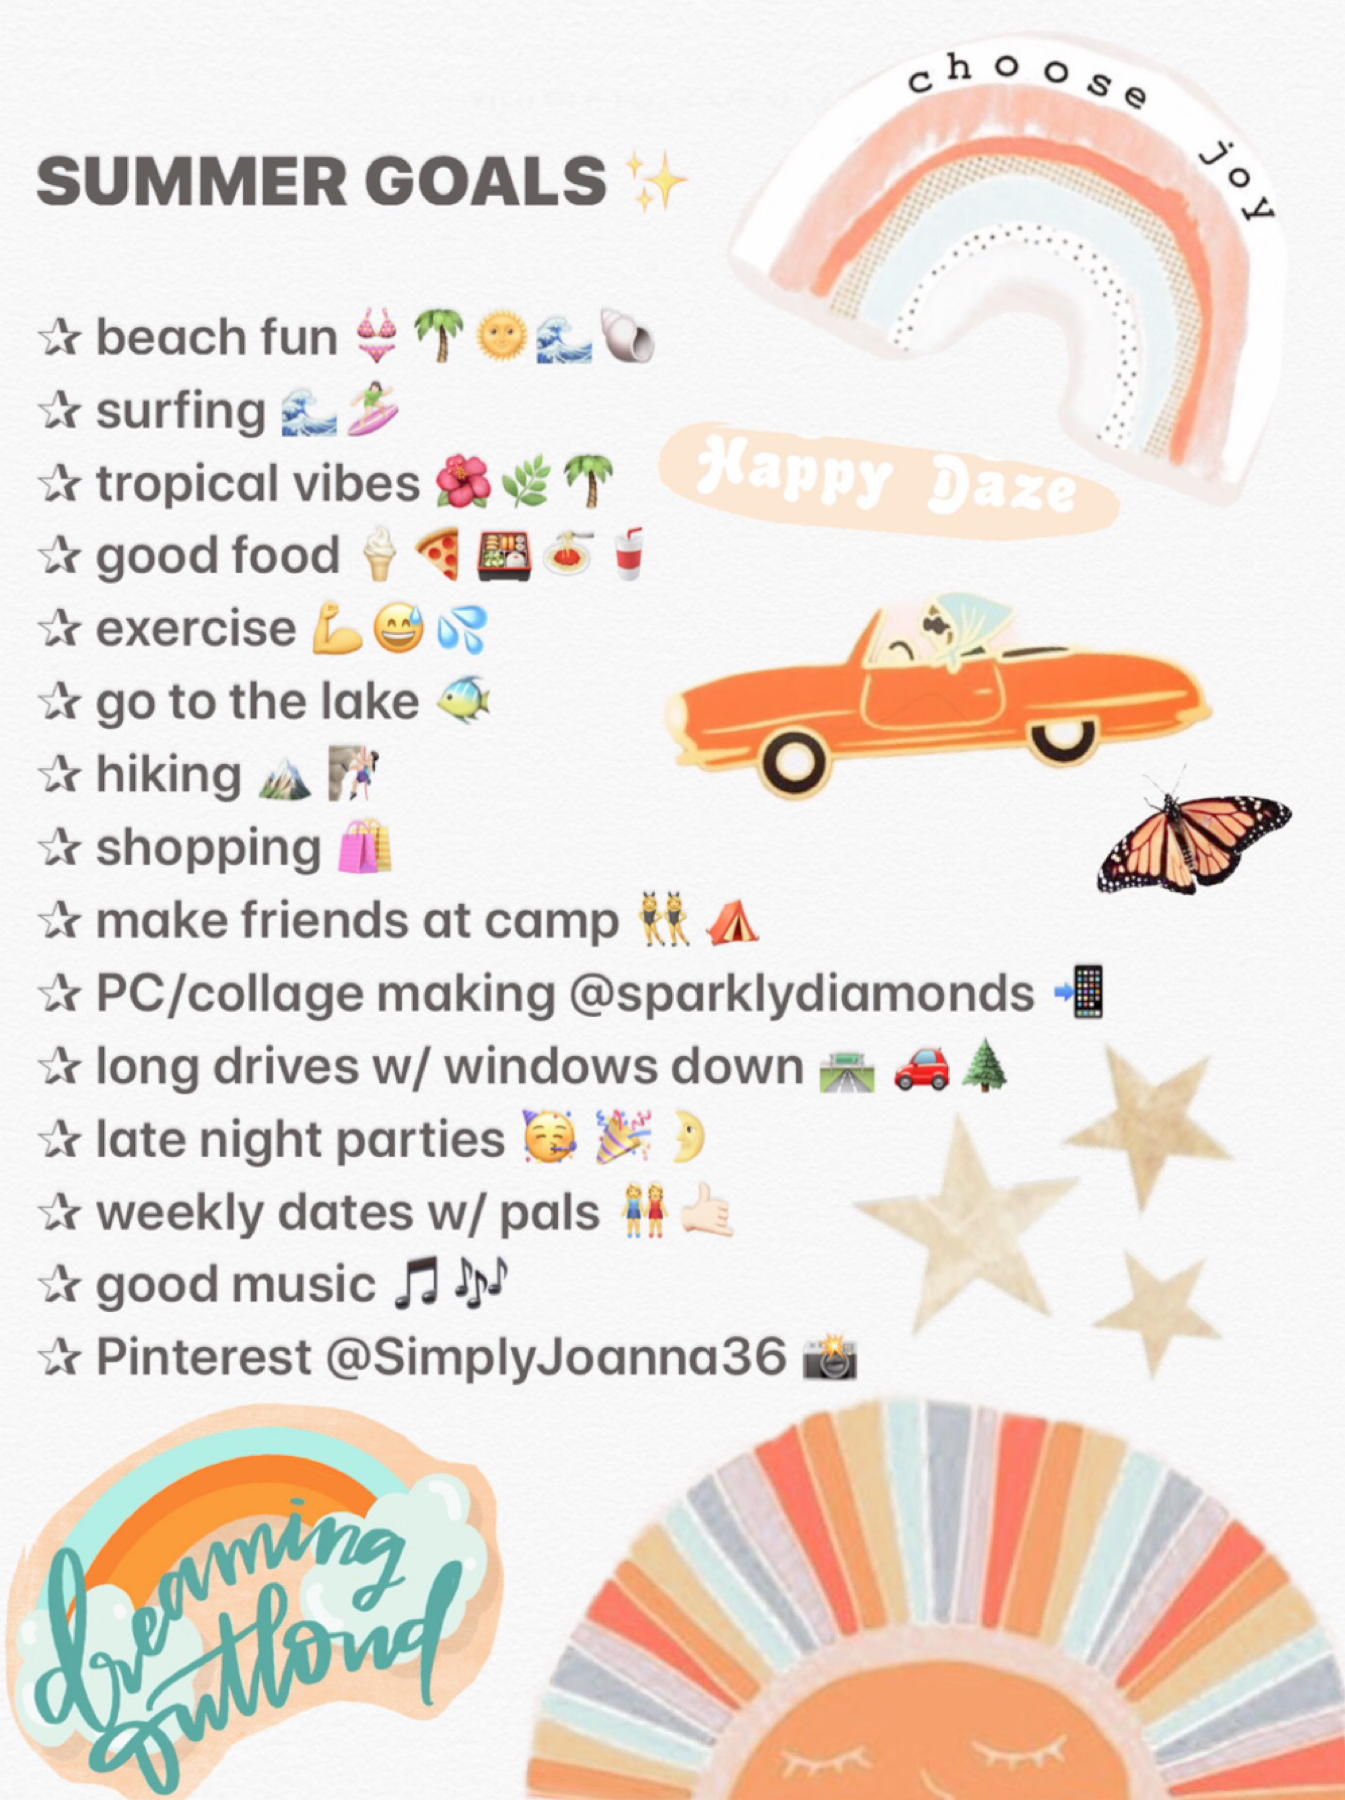 This are my goals for this summer :) I really wish I can do all of these things //